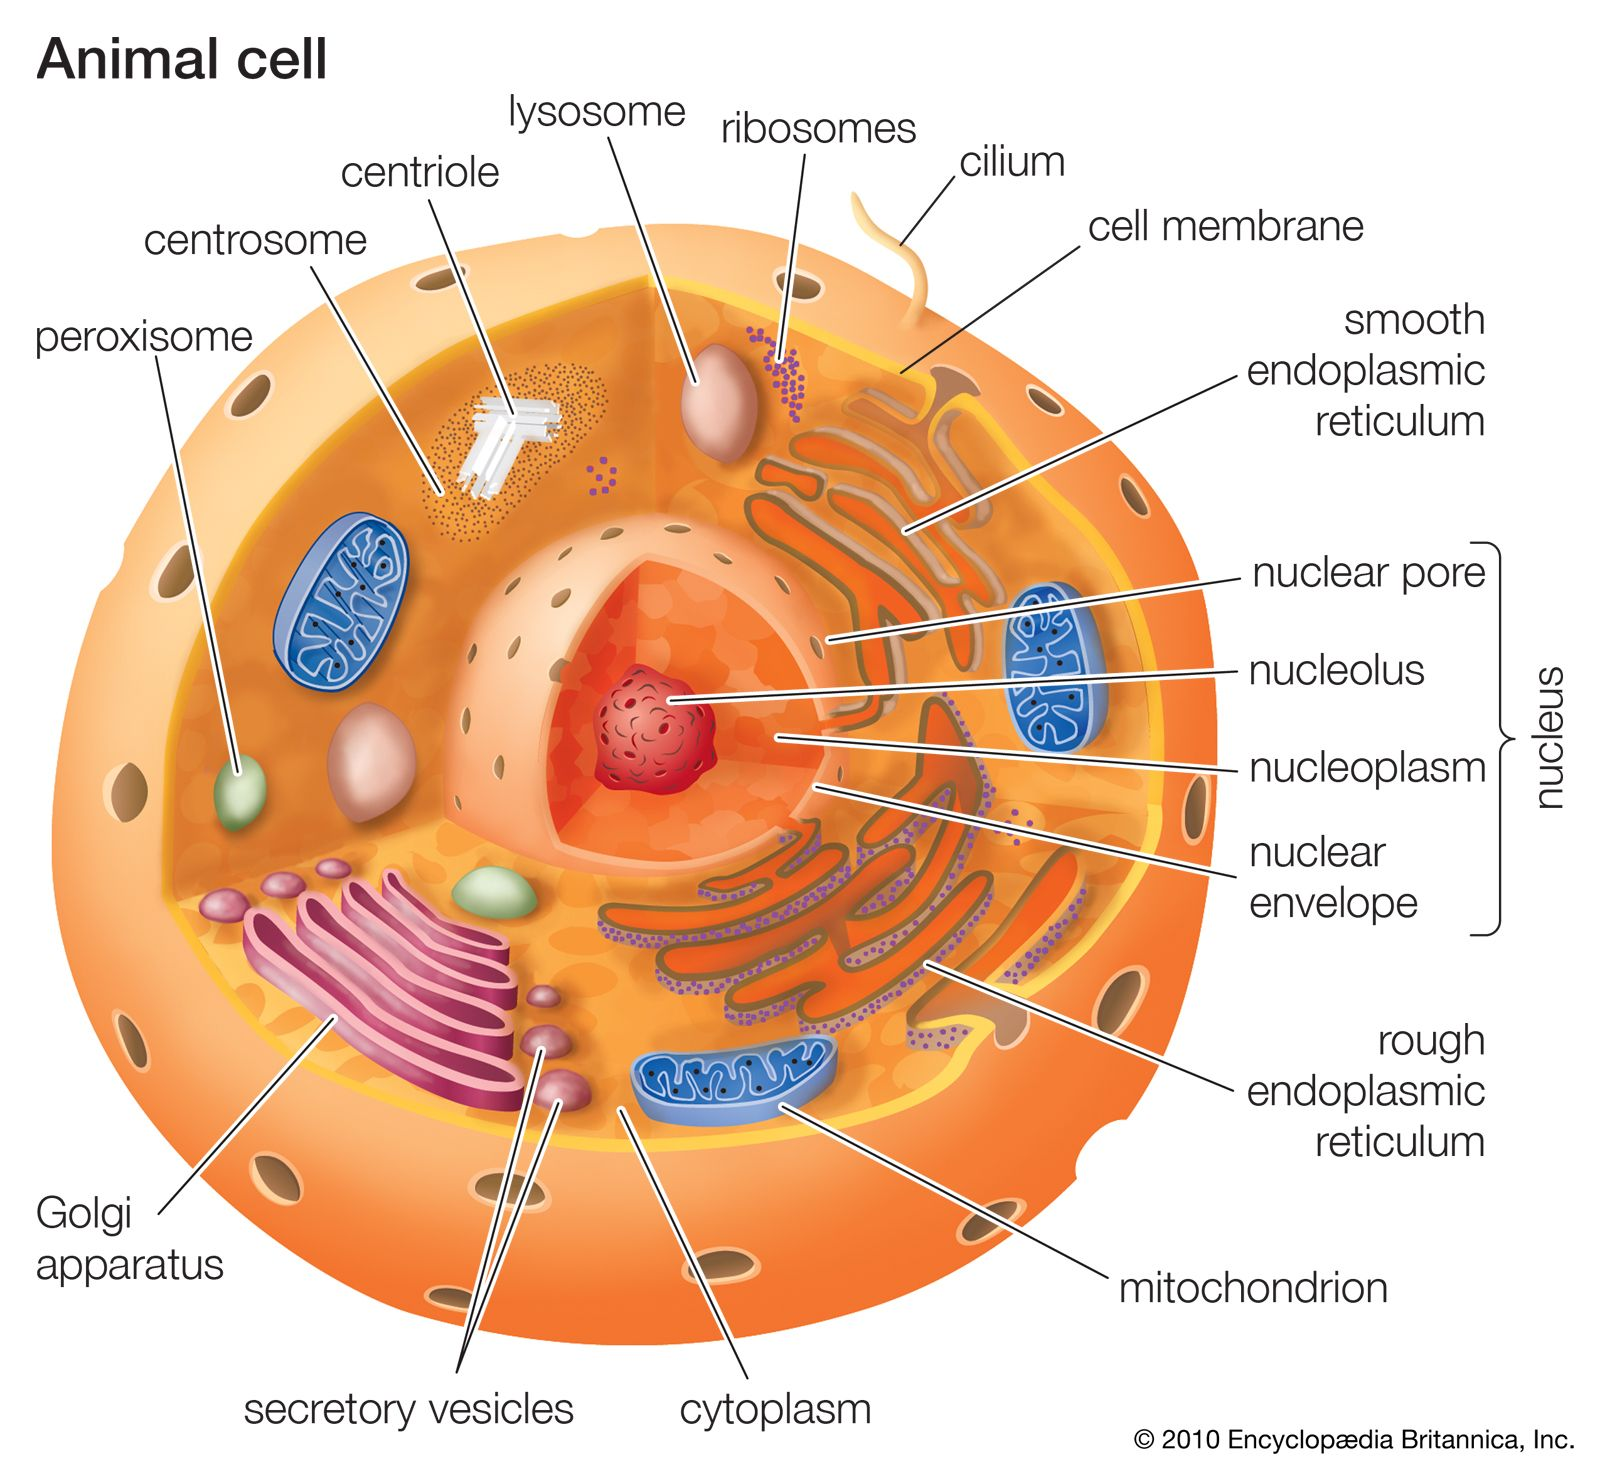 hight resolution of animal cell biology pictures animal cell diagram homeschool animal nerve cell diagram animal cell biology pictures